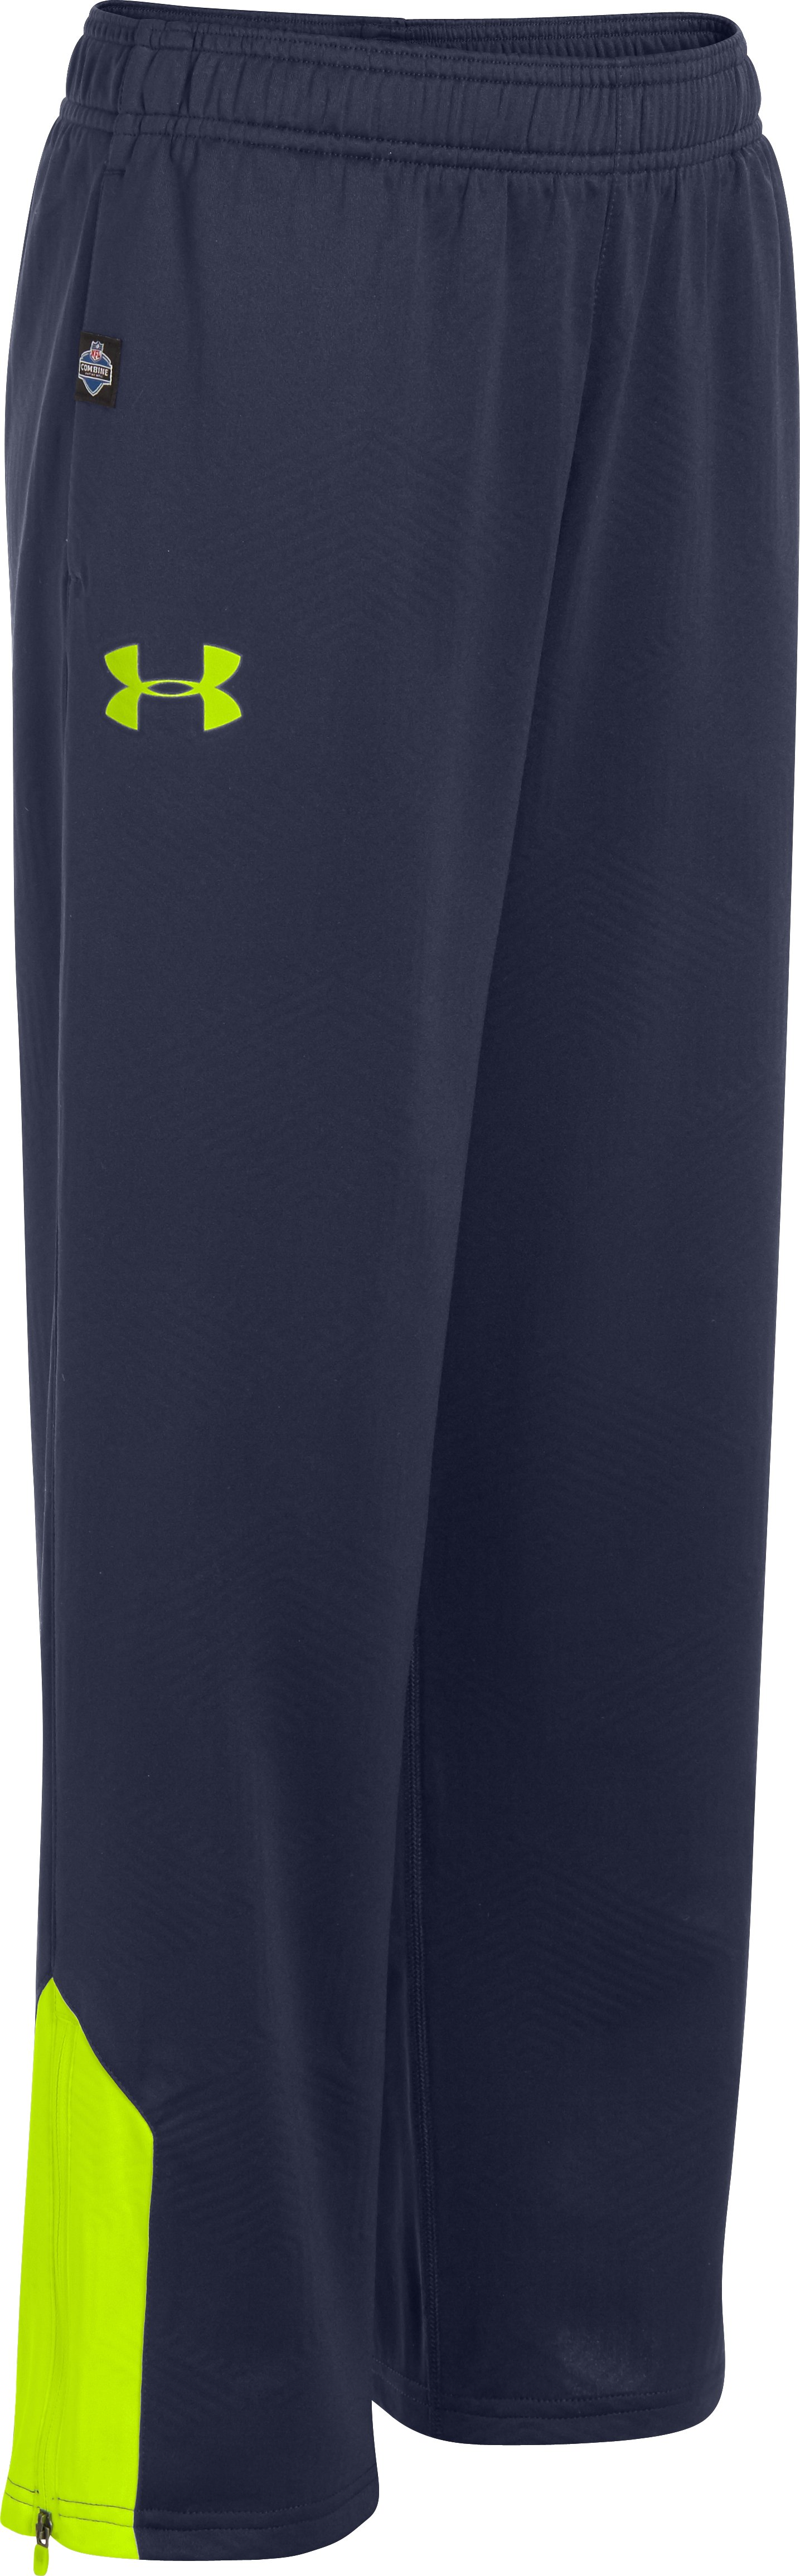 Boys' NFL Combine Authentic ColdGear® Infrared Warm-Up Pants, Midnight Navy